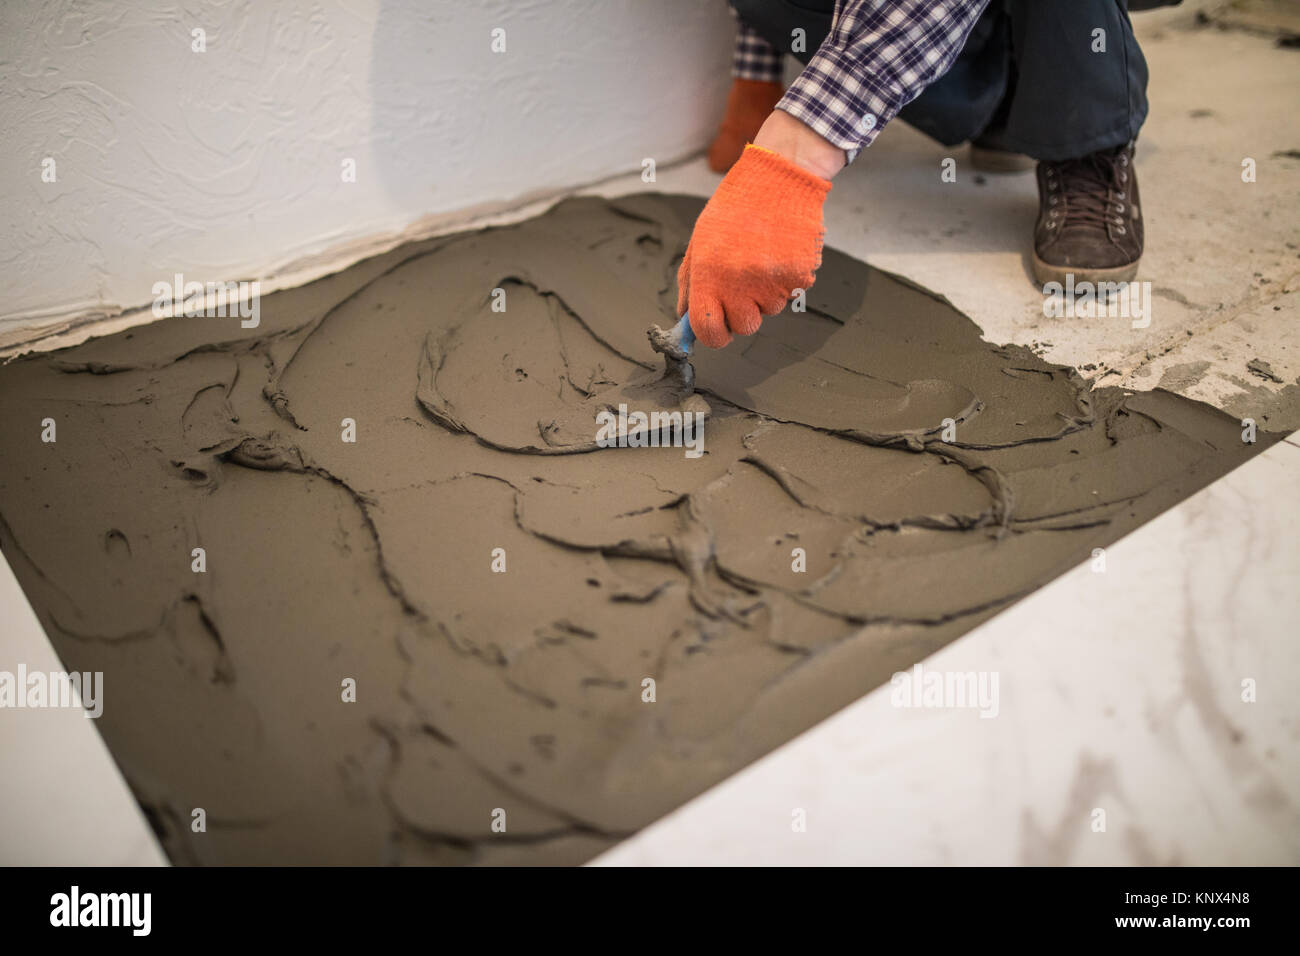 Laying ceramic tiles troweling mortar onto a concrete floor in laying ceramic tiles troweling mortar onto a concrete floor in preparation for laying floor tile dailygadgetfo Images